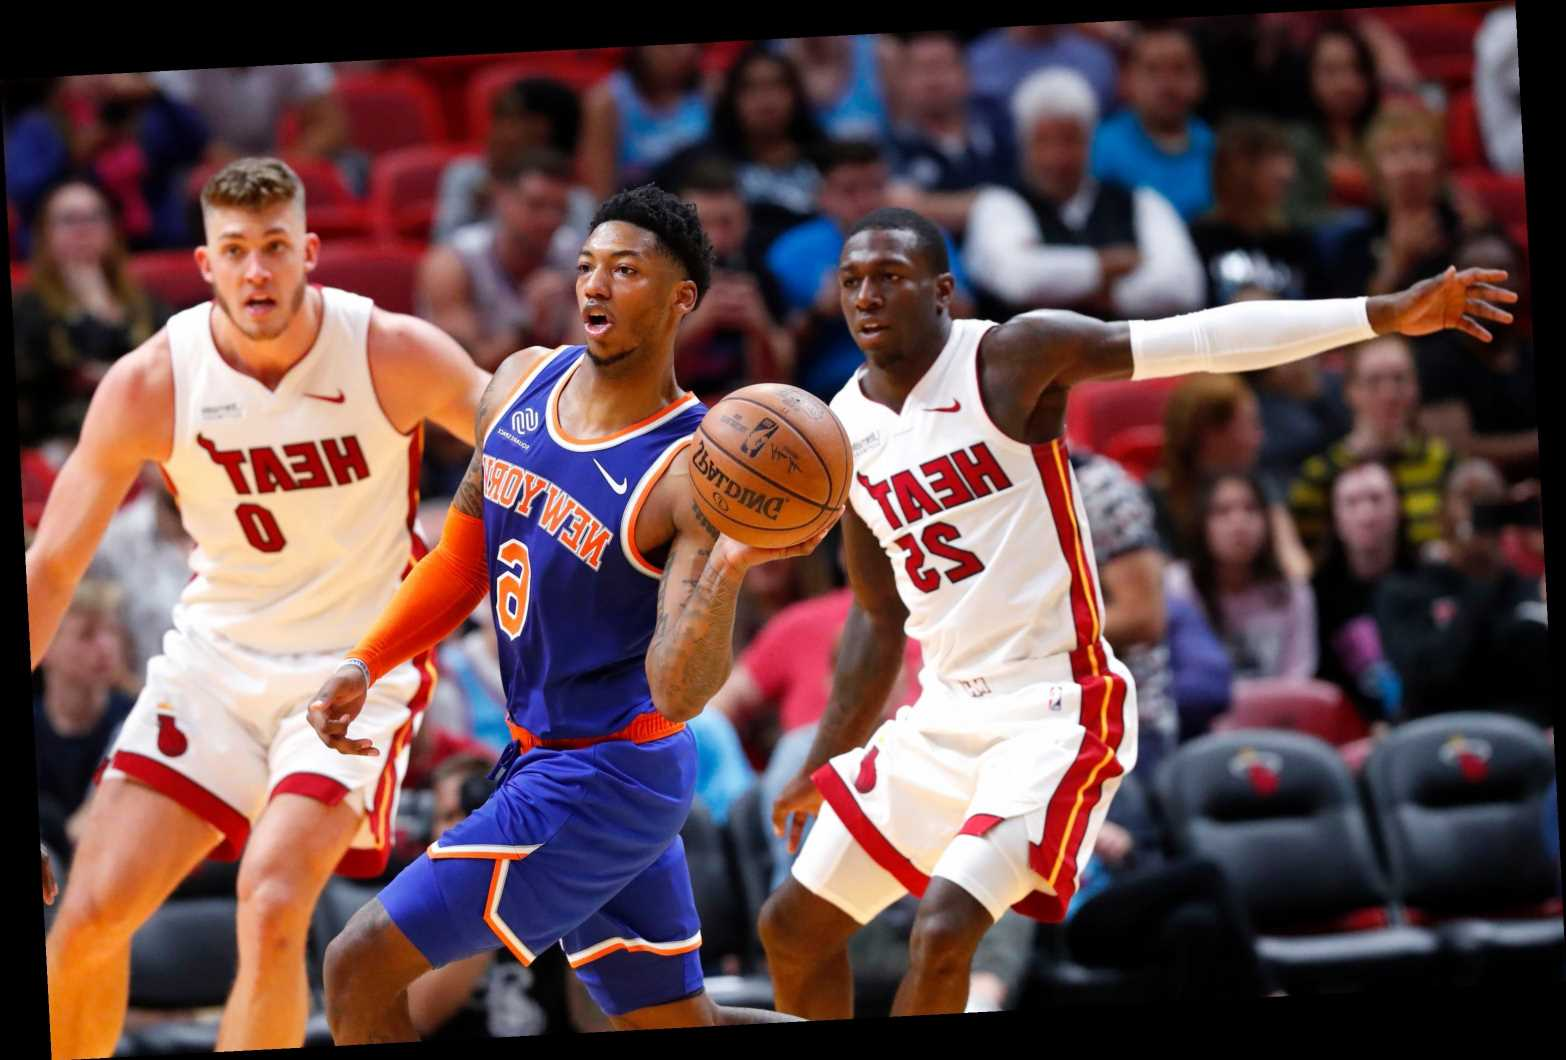 Knicks get brutal reality check in lopsided loss to Heat